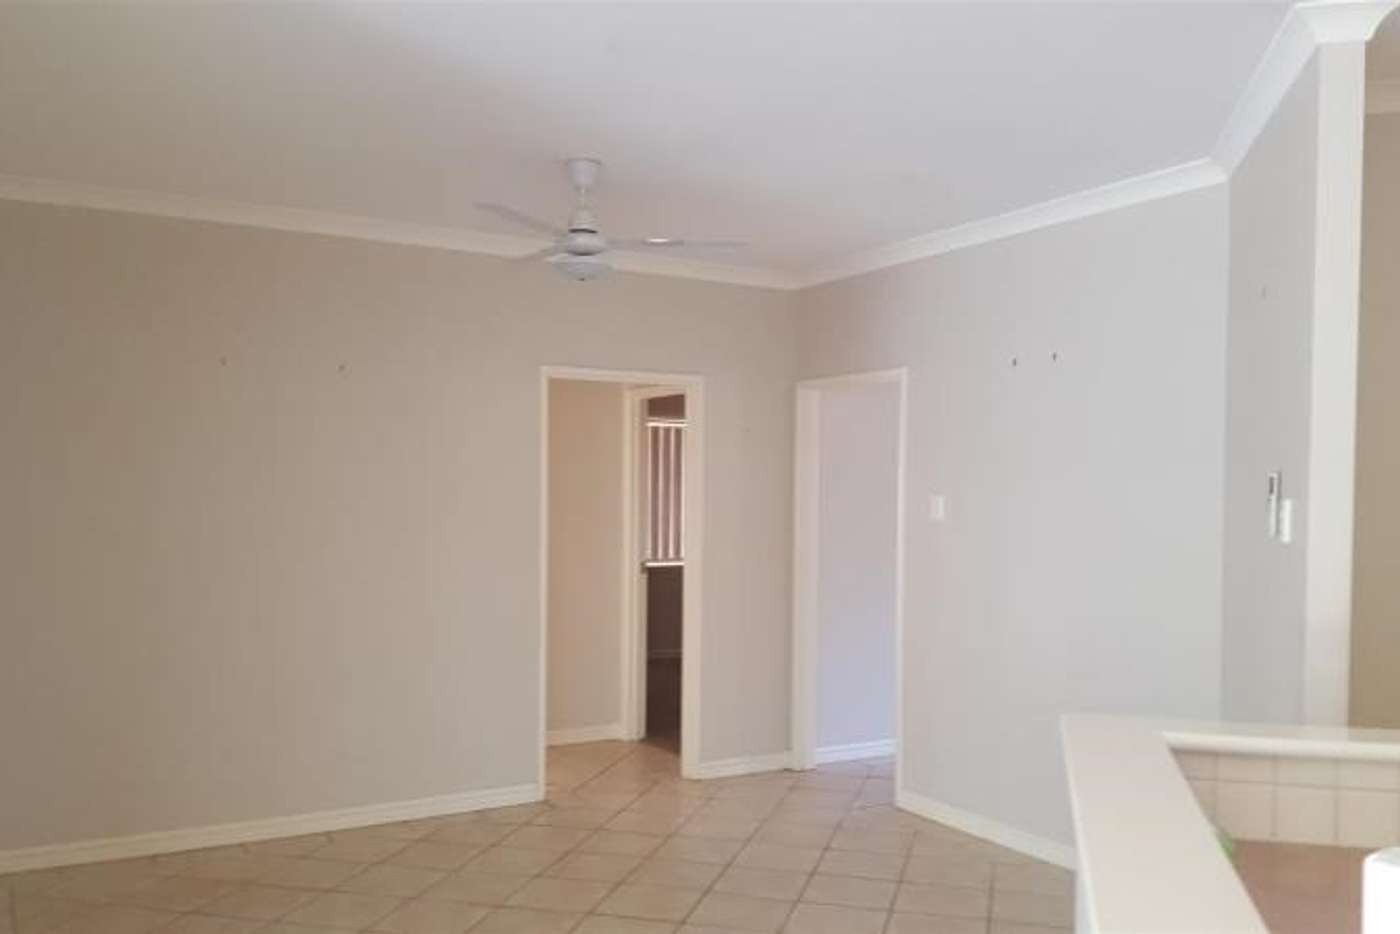 Seventh view of Homely house listing, 84 Radley Drive, Baynton WA 6714